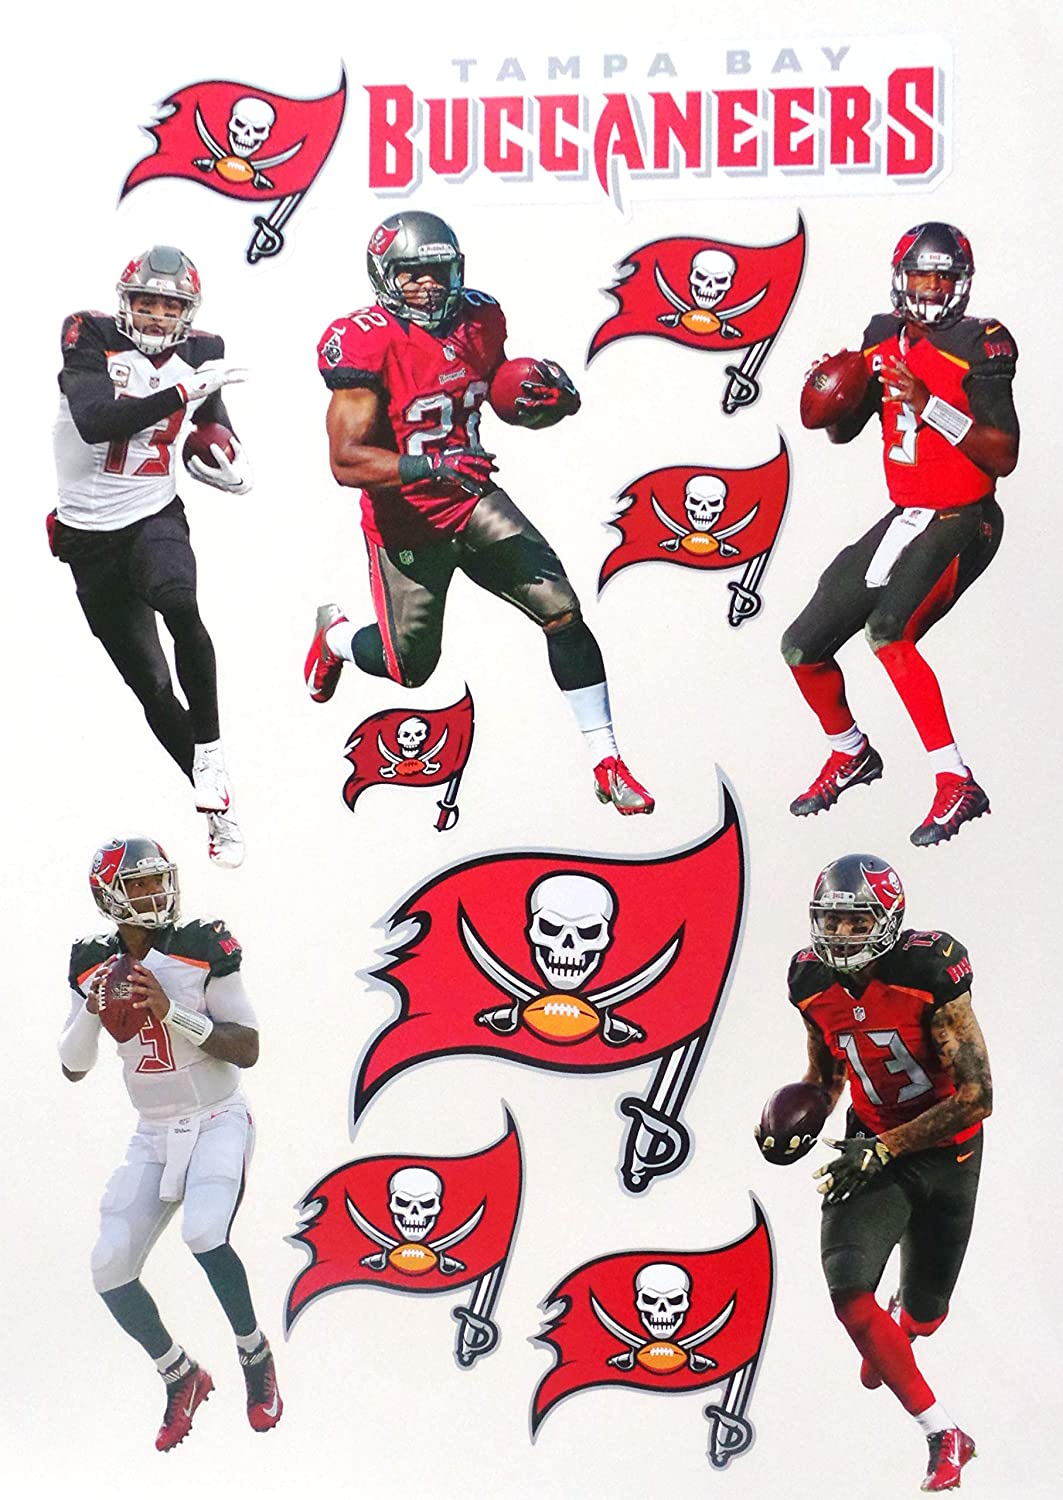 Amazon Com Tampa Bay Buccaneers Mini Fathead Team Set 5 Players Bucs Logo Set Official Nfl Vinyl Wall Graphics Each Player 7 Inch Arts Crafts Sewing